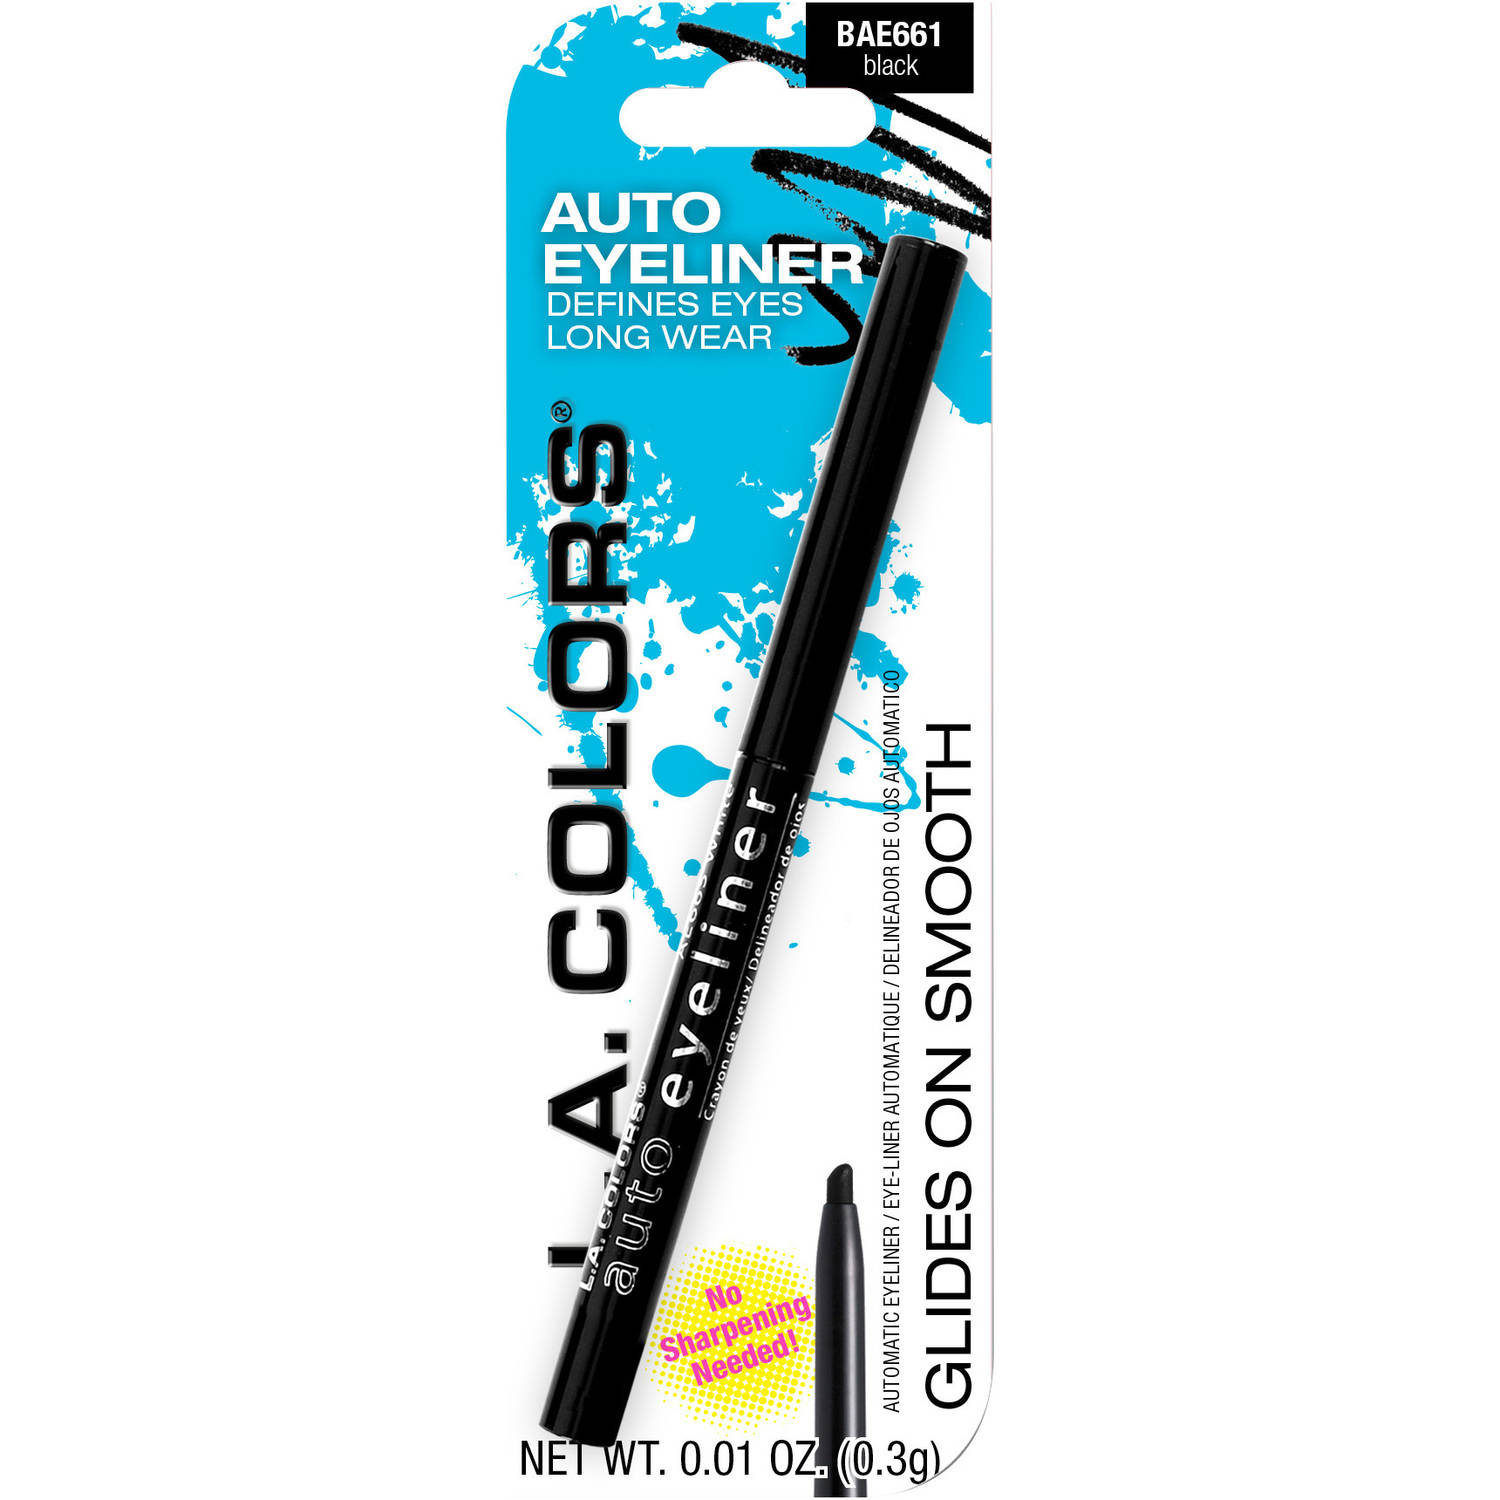 (2 Pack) L.A. Colors Auto Eyeliner Pencil, Black, 0.01 oz